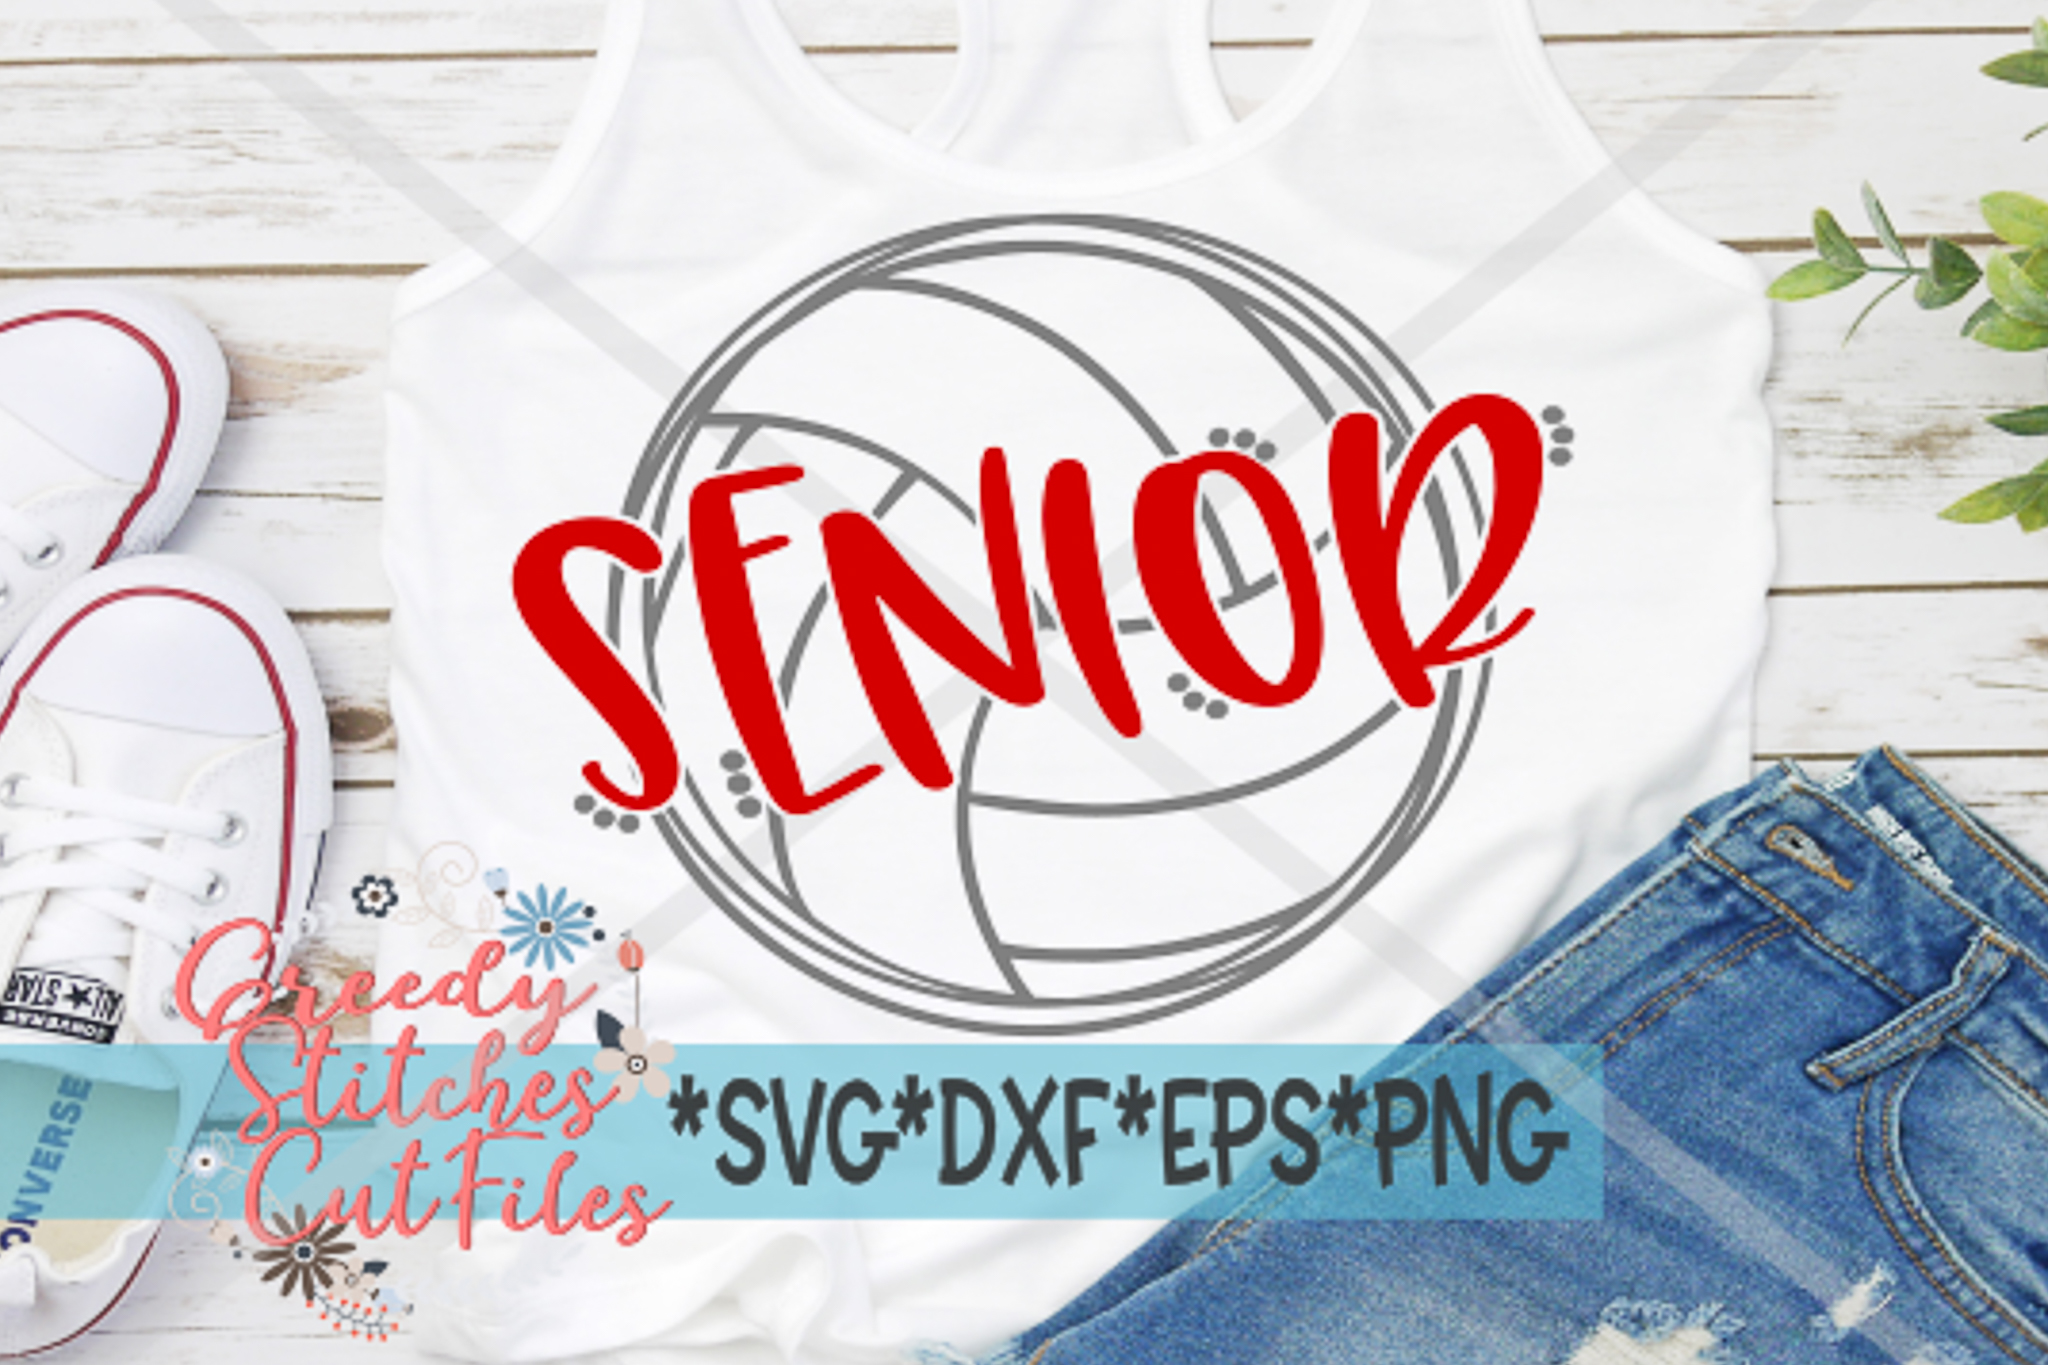 Senior Volleyball SVG, DXF, EPS, PNG Files example image 5